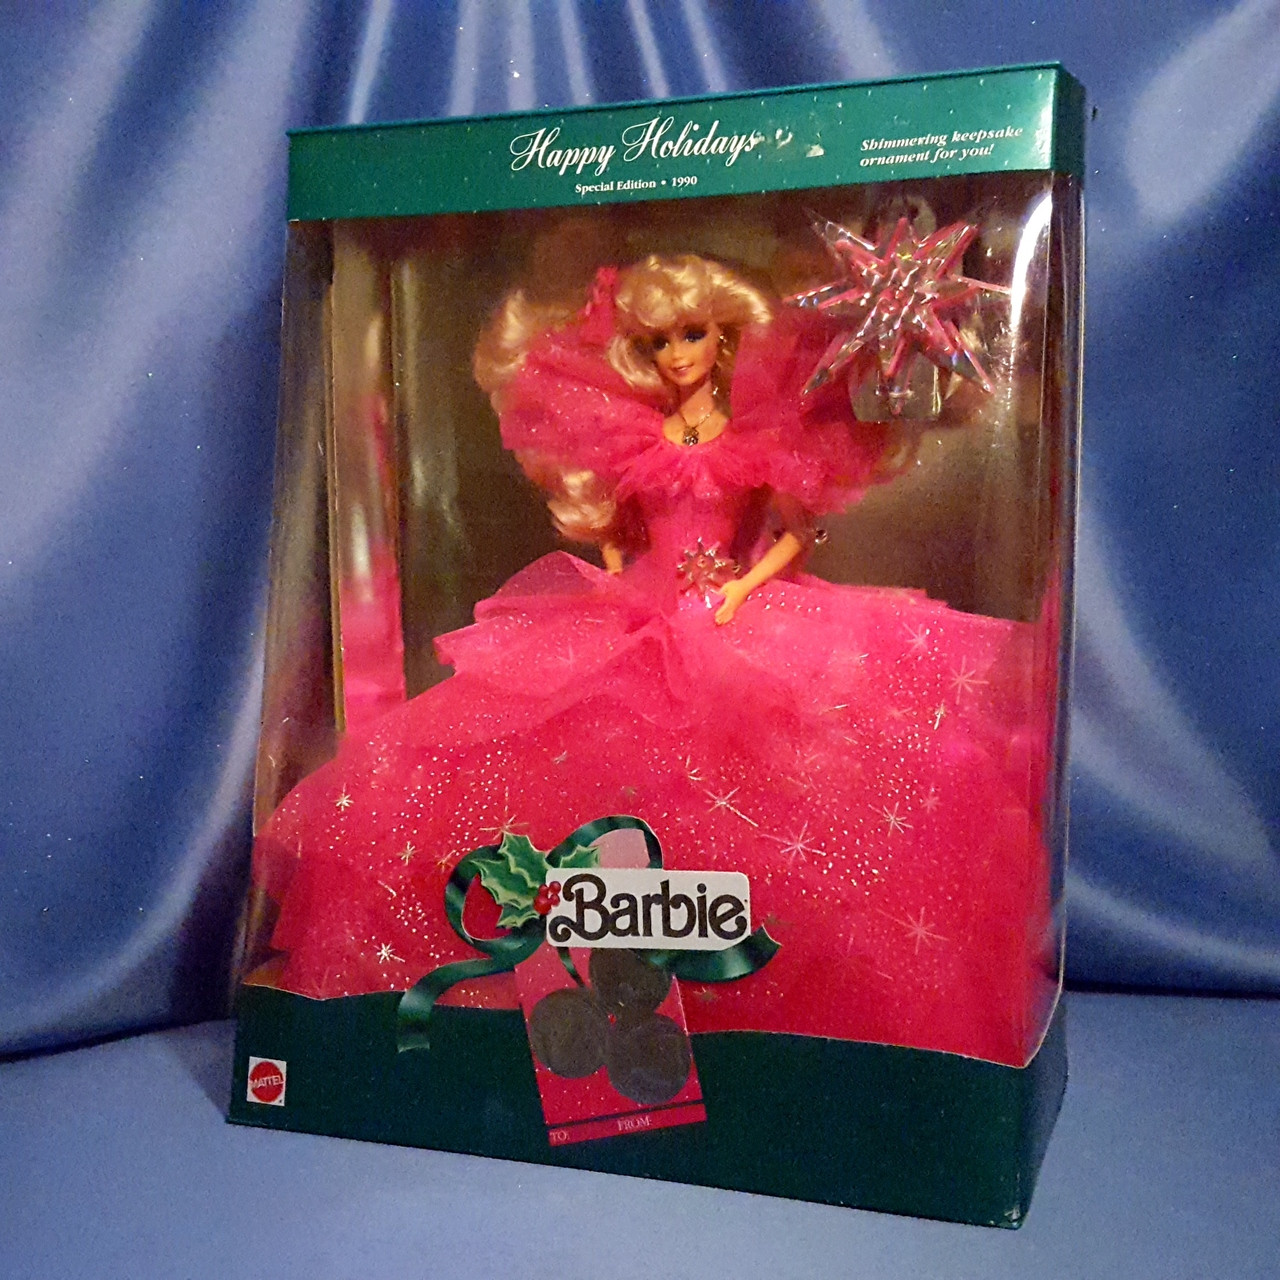 Barbie - Happy Holidays - Special Edition 1990 by Matte